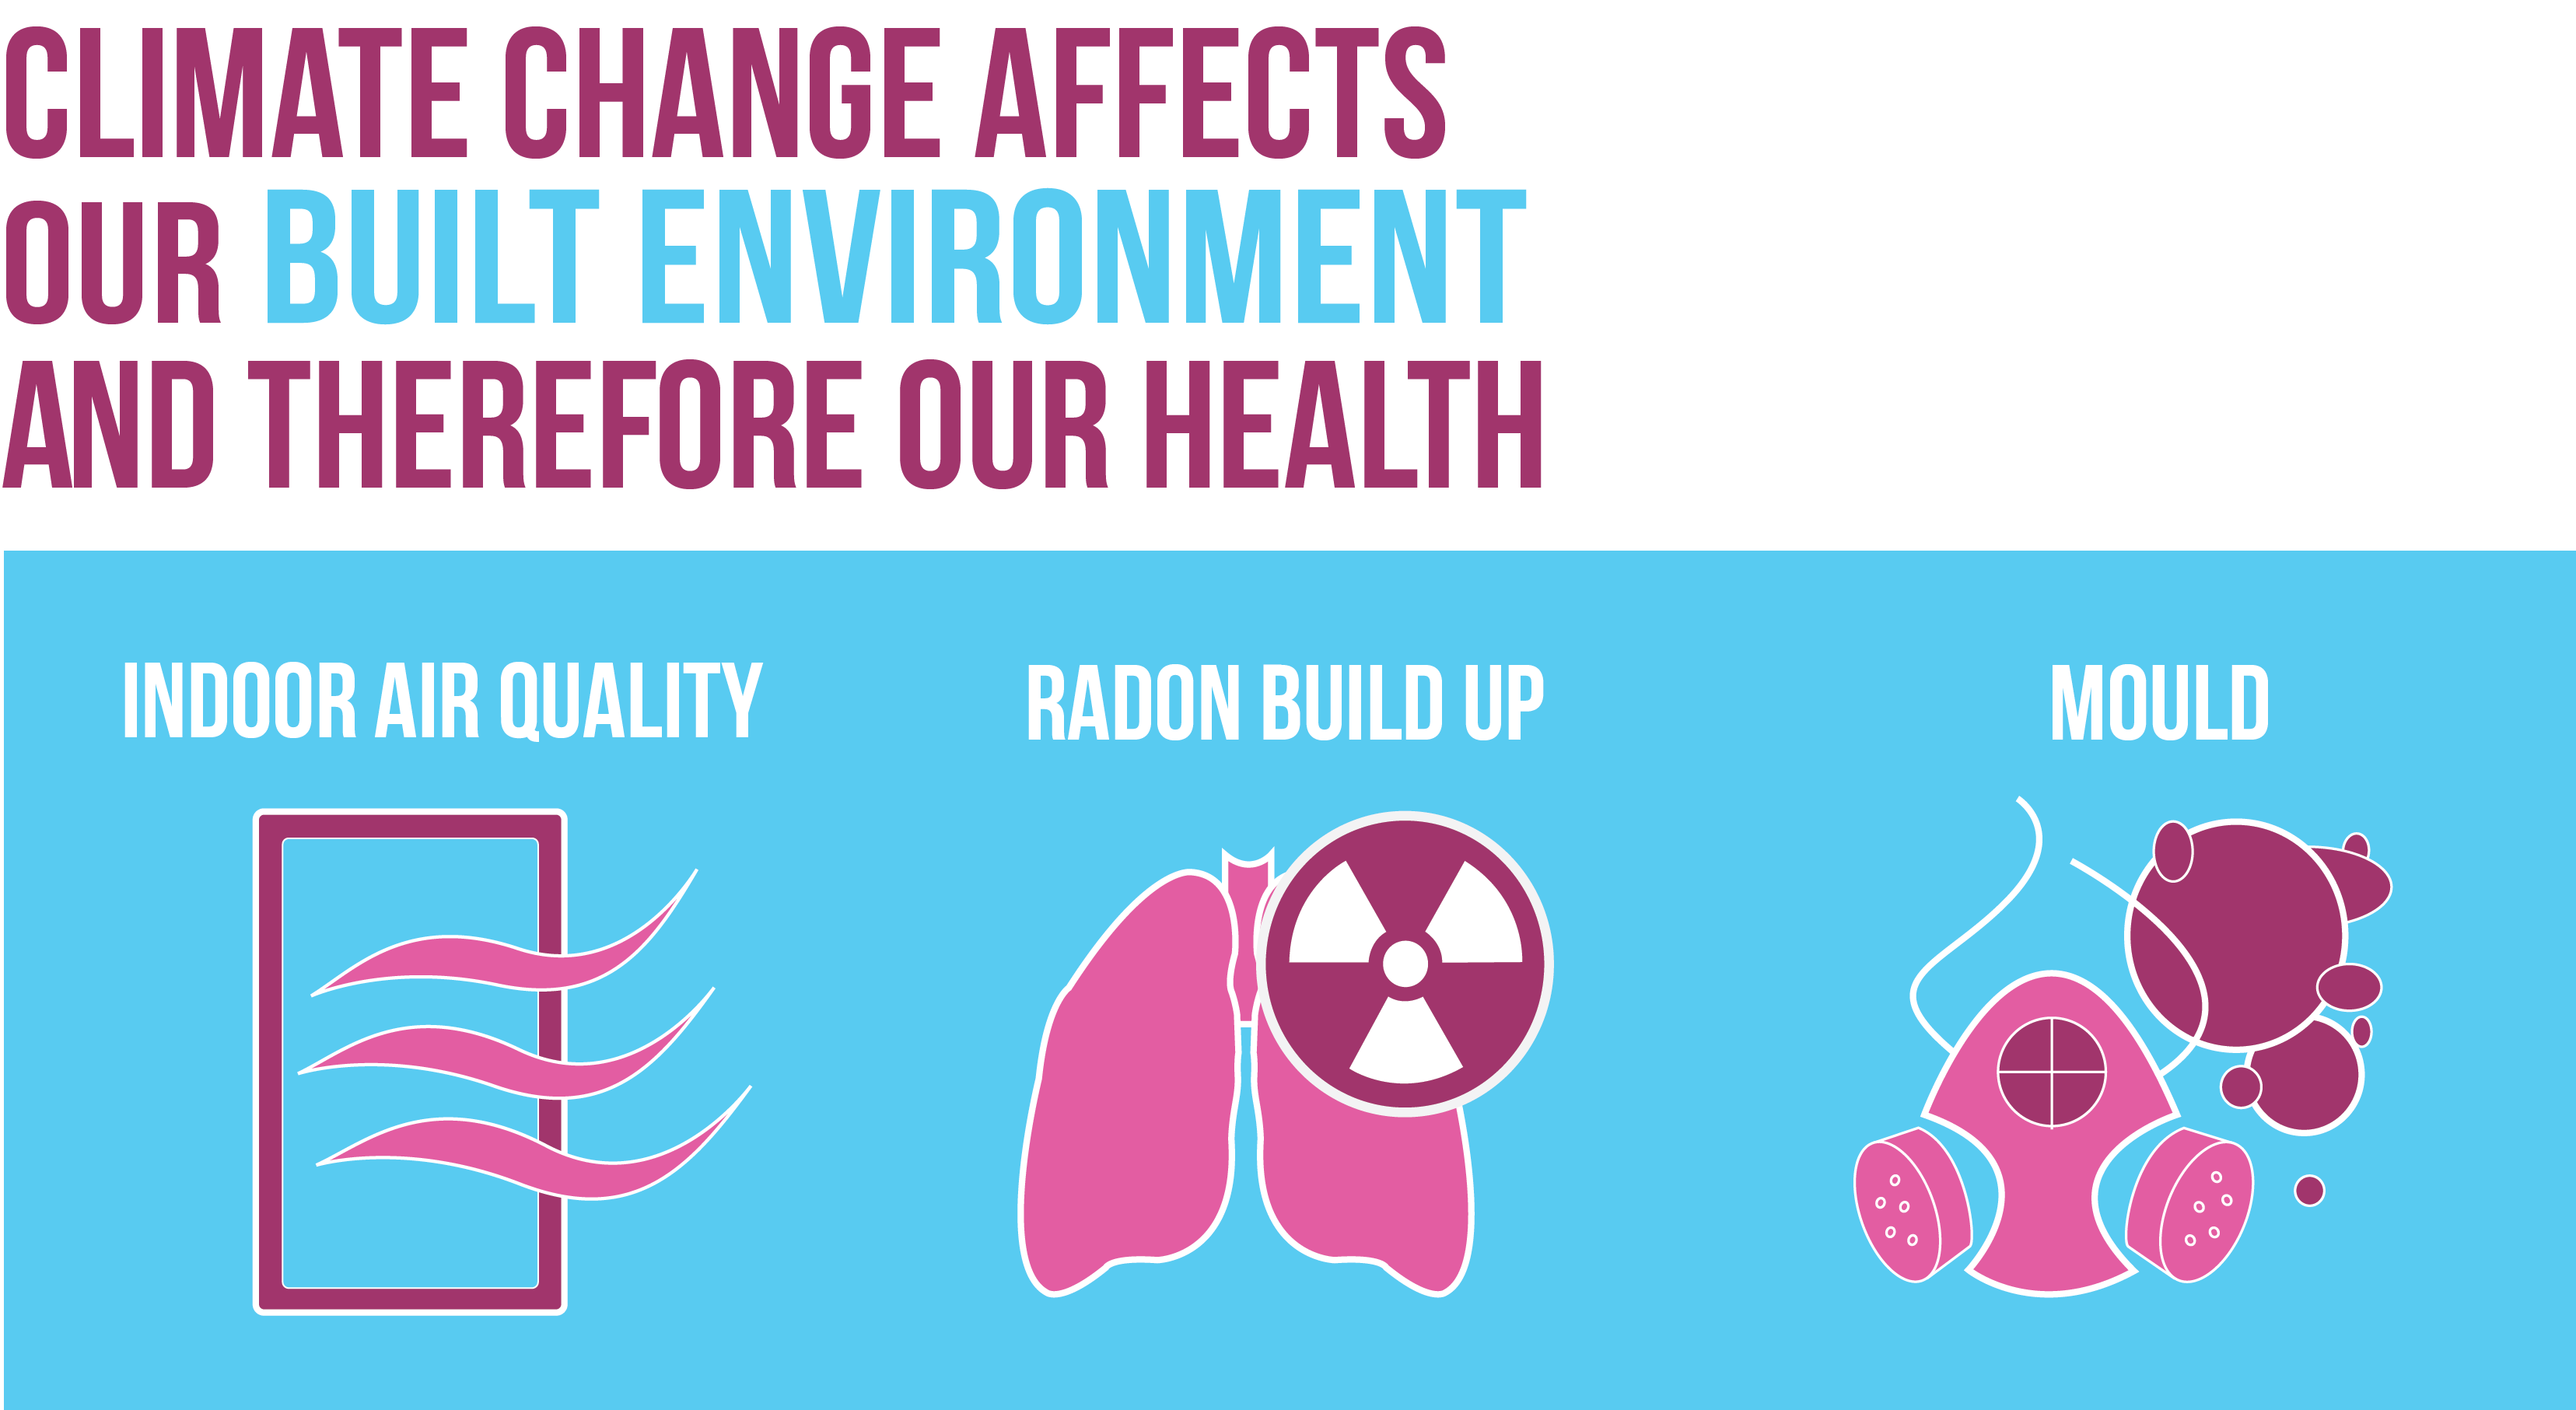 Environment vector infographic. The healthy communities campaign